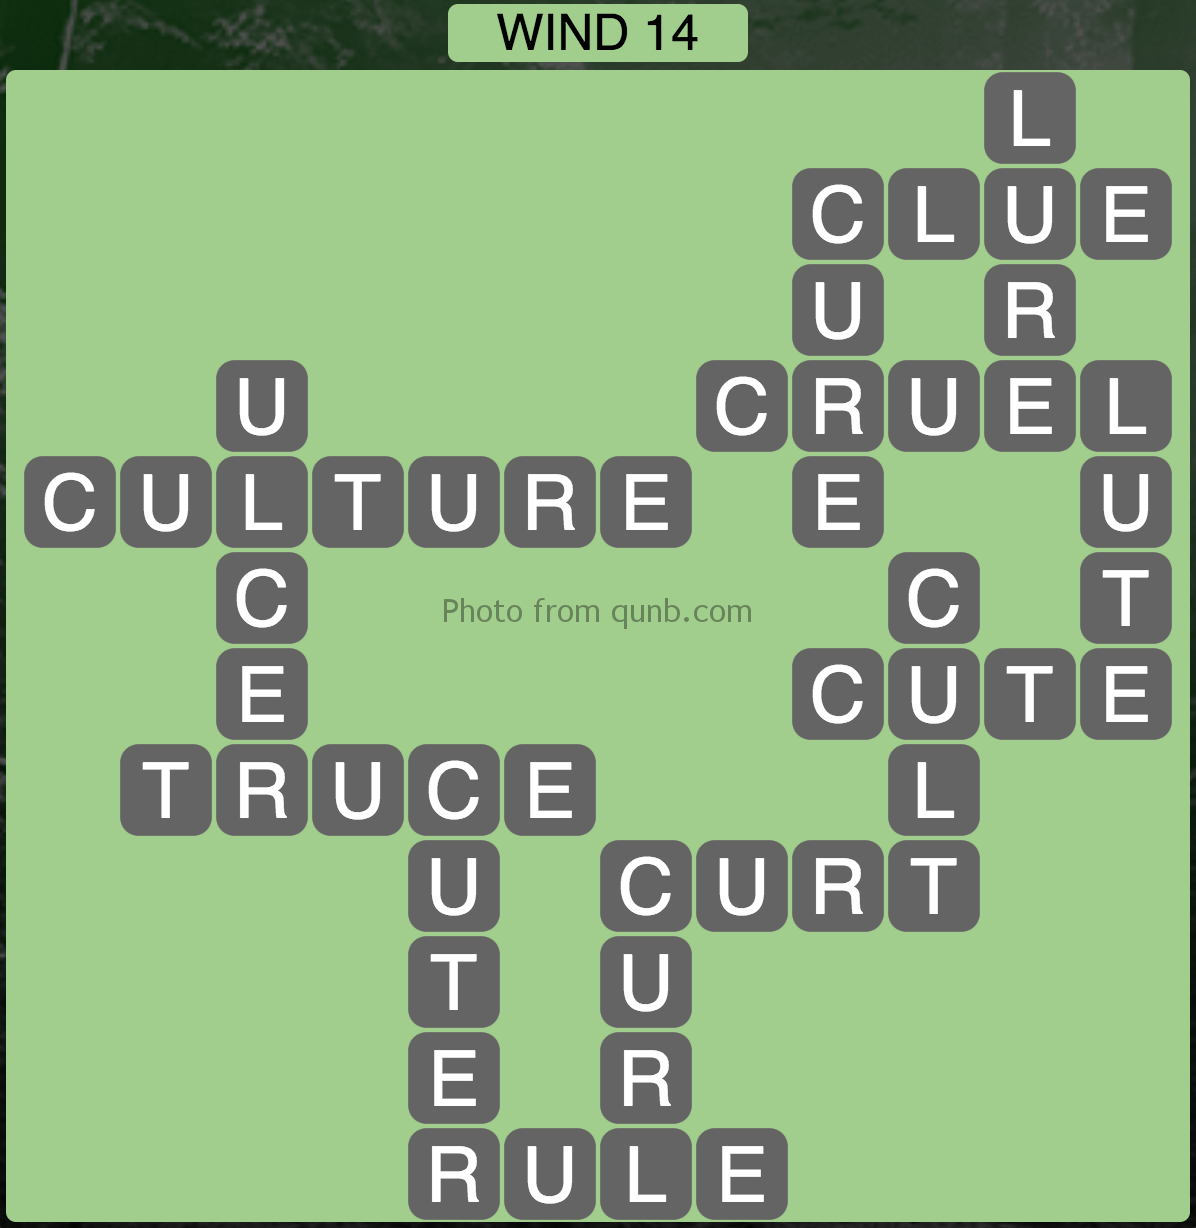 Wordscapes Wind 14 (Level 942) Answers